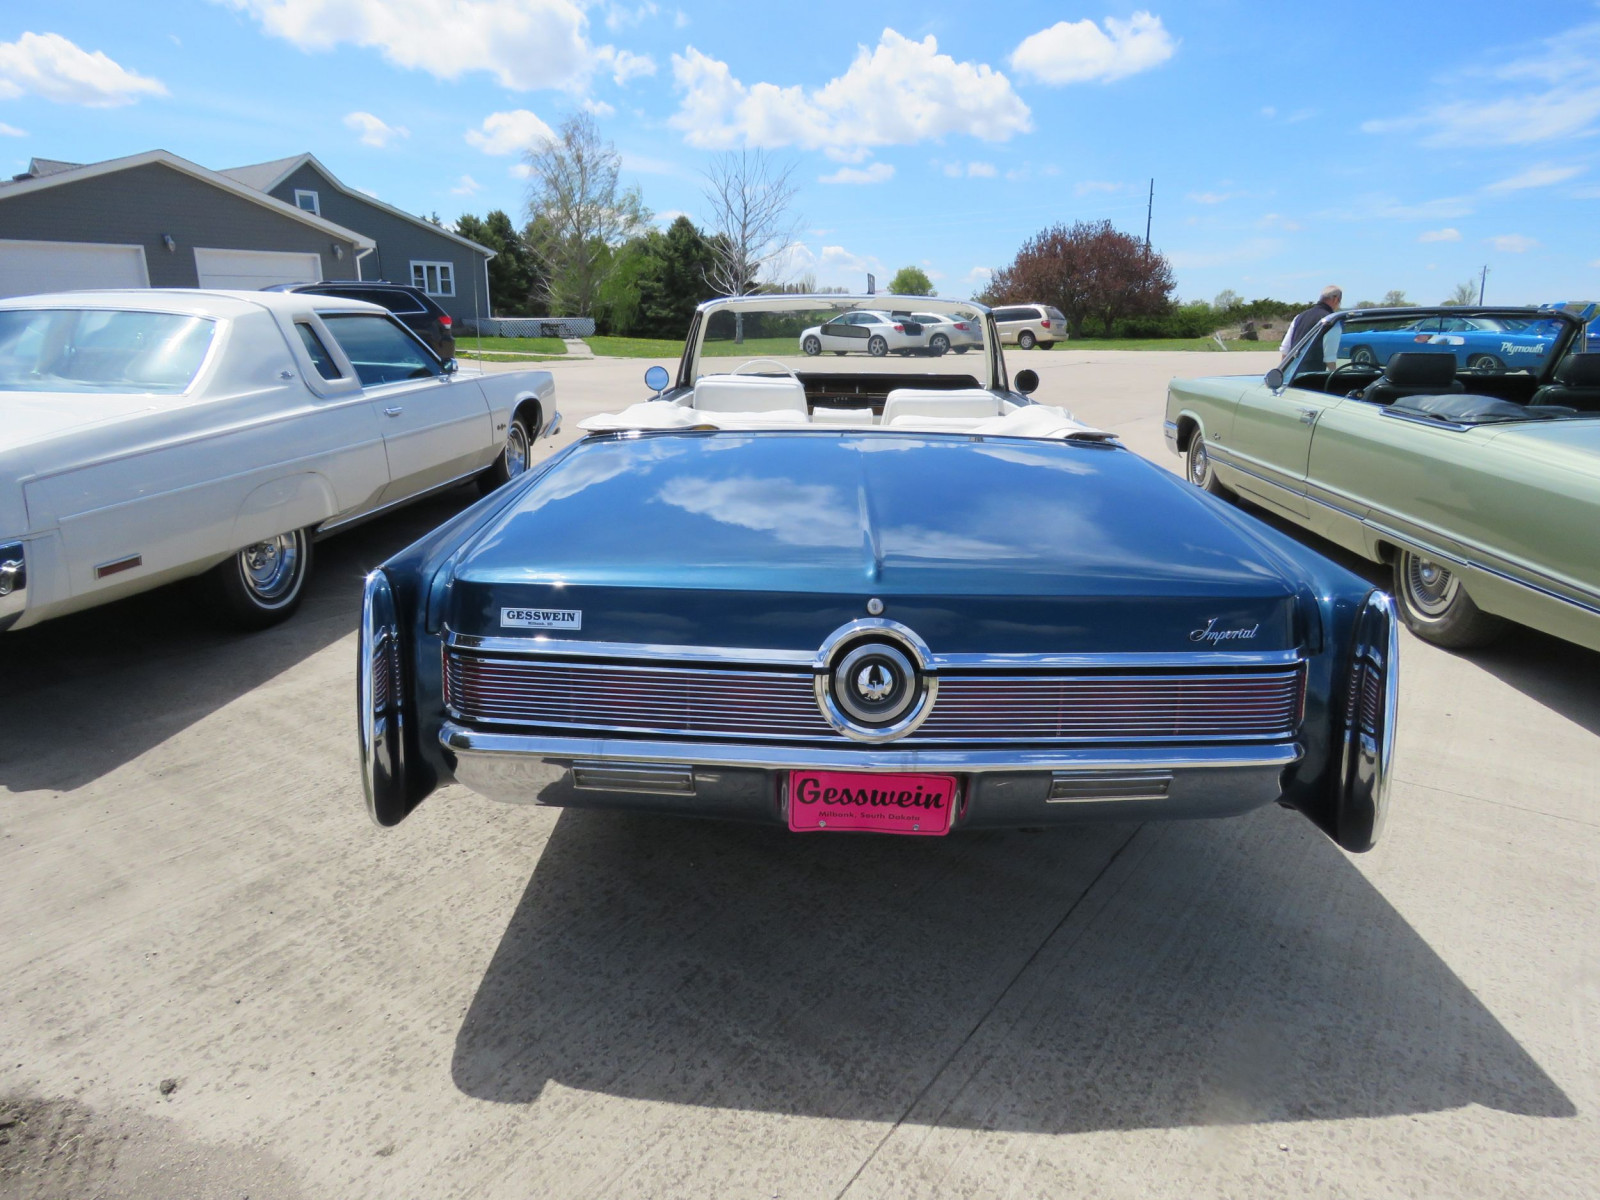 1968 Chrysler Imperial Crown Convertible - Image 6